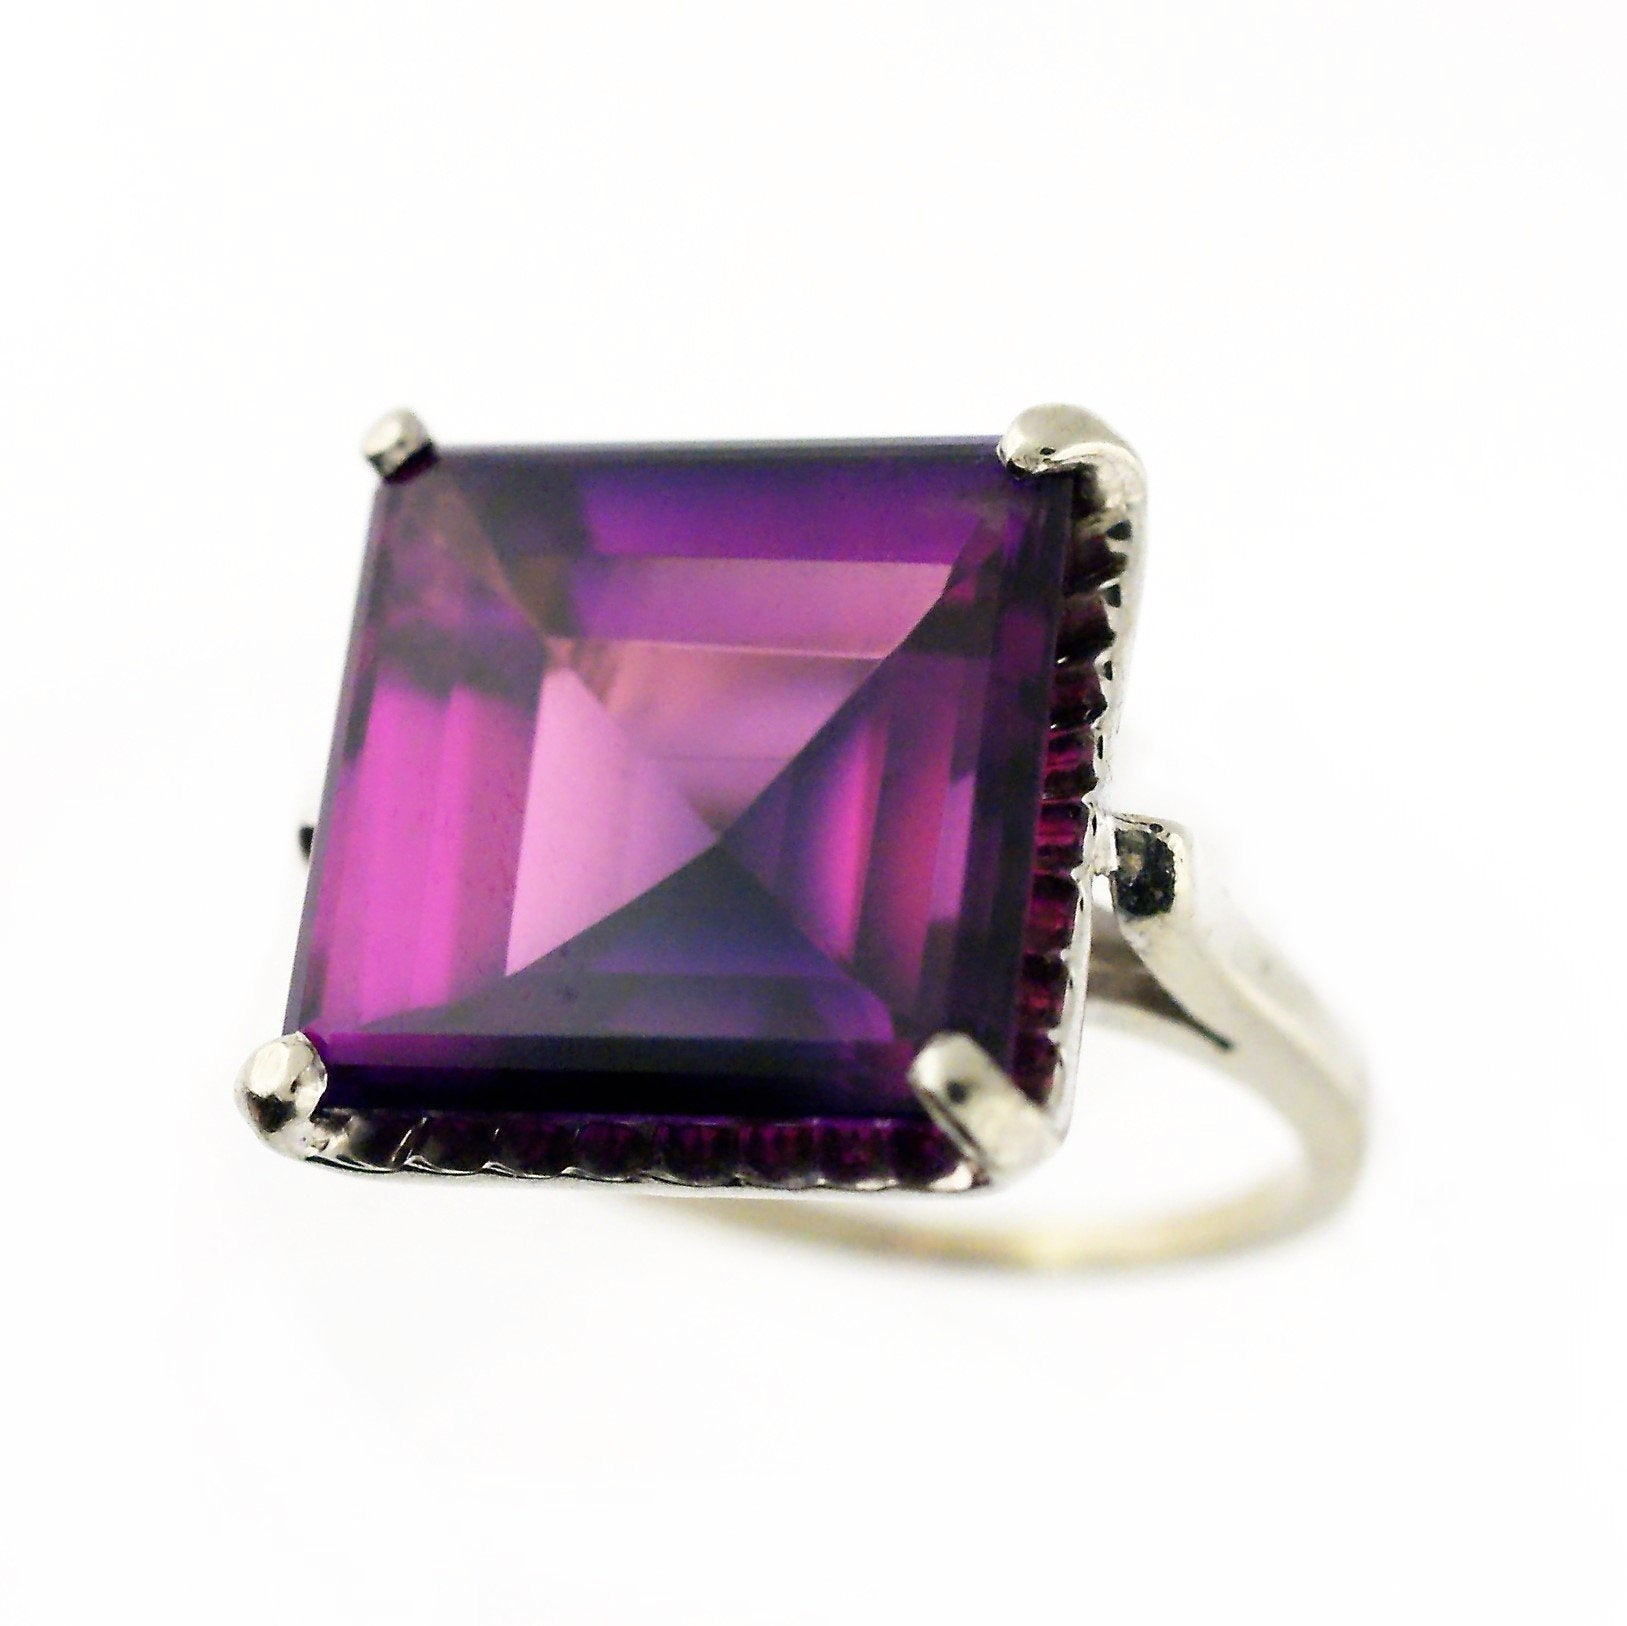 10k White Gold Large Amethyst Ring